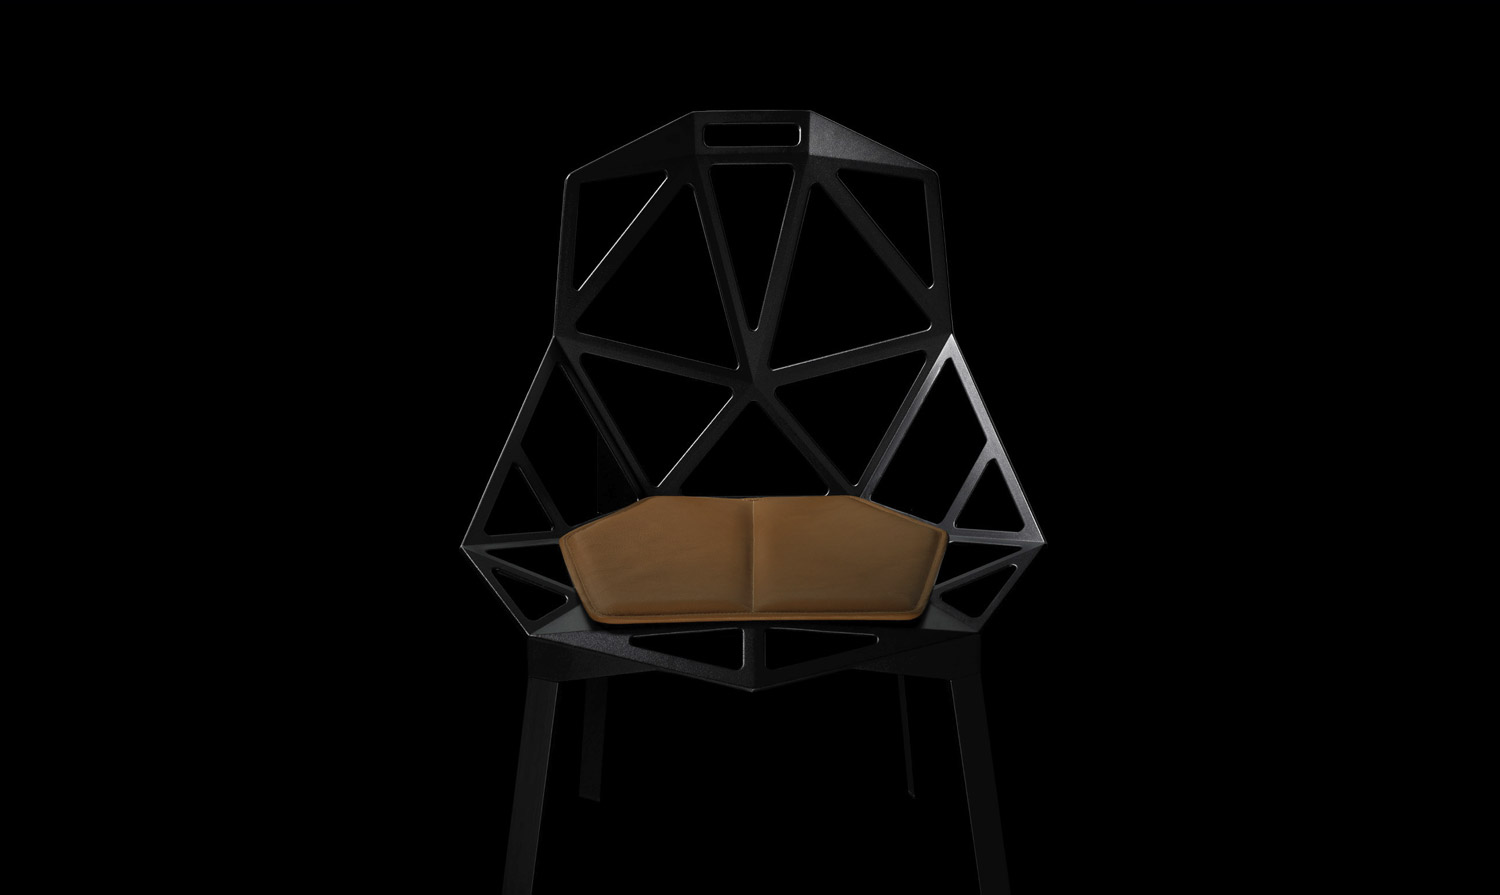 1 / 5. Stacking chair. & Chair_One - MagisMagis